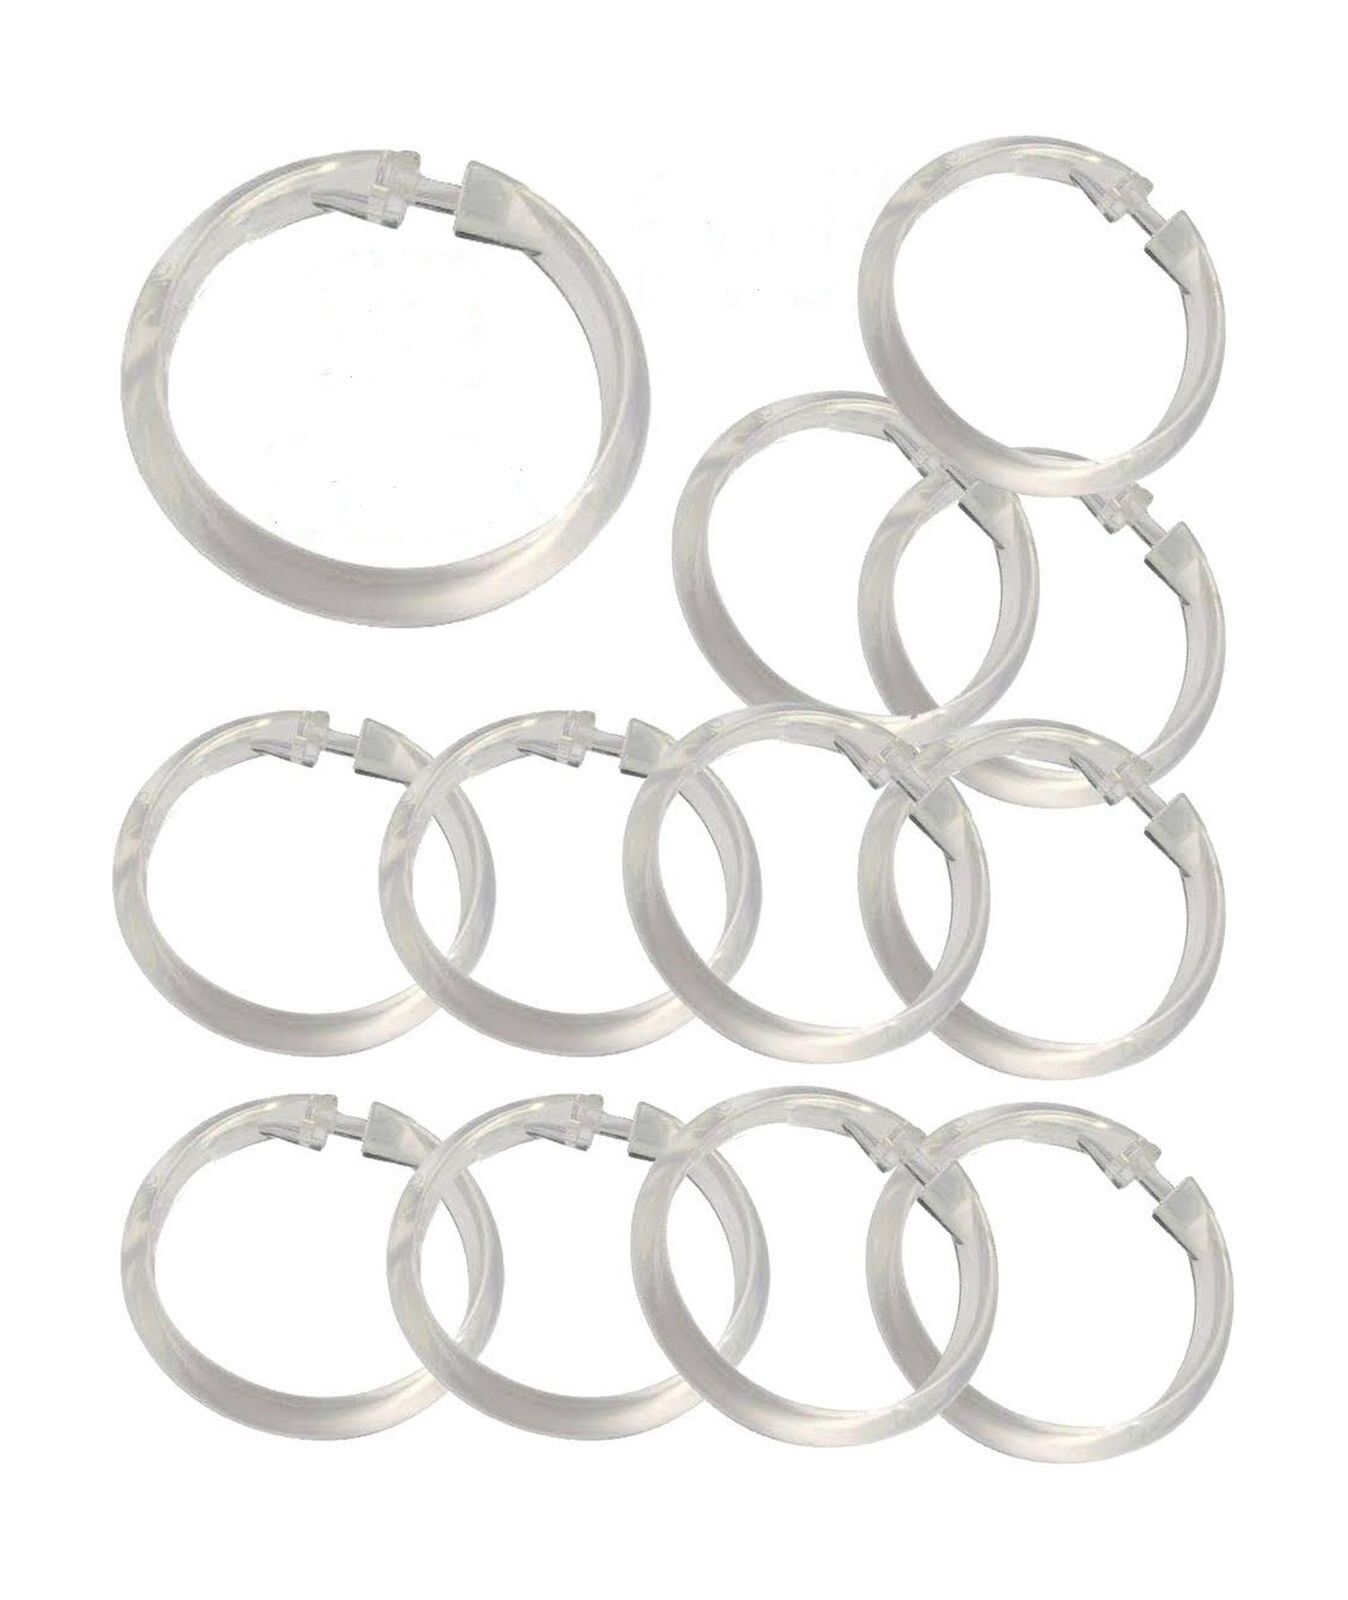 Set Of 12 Easy To Use Plastic Snap On Shower Curtain Rings Hooks All Colors